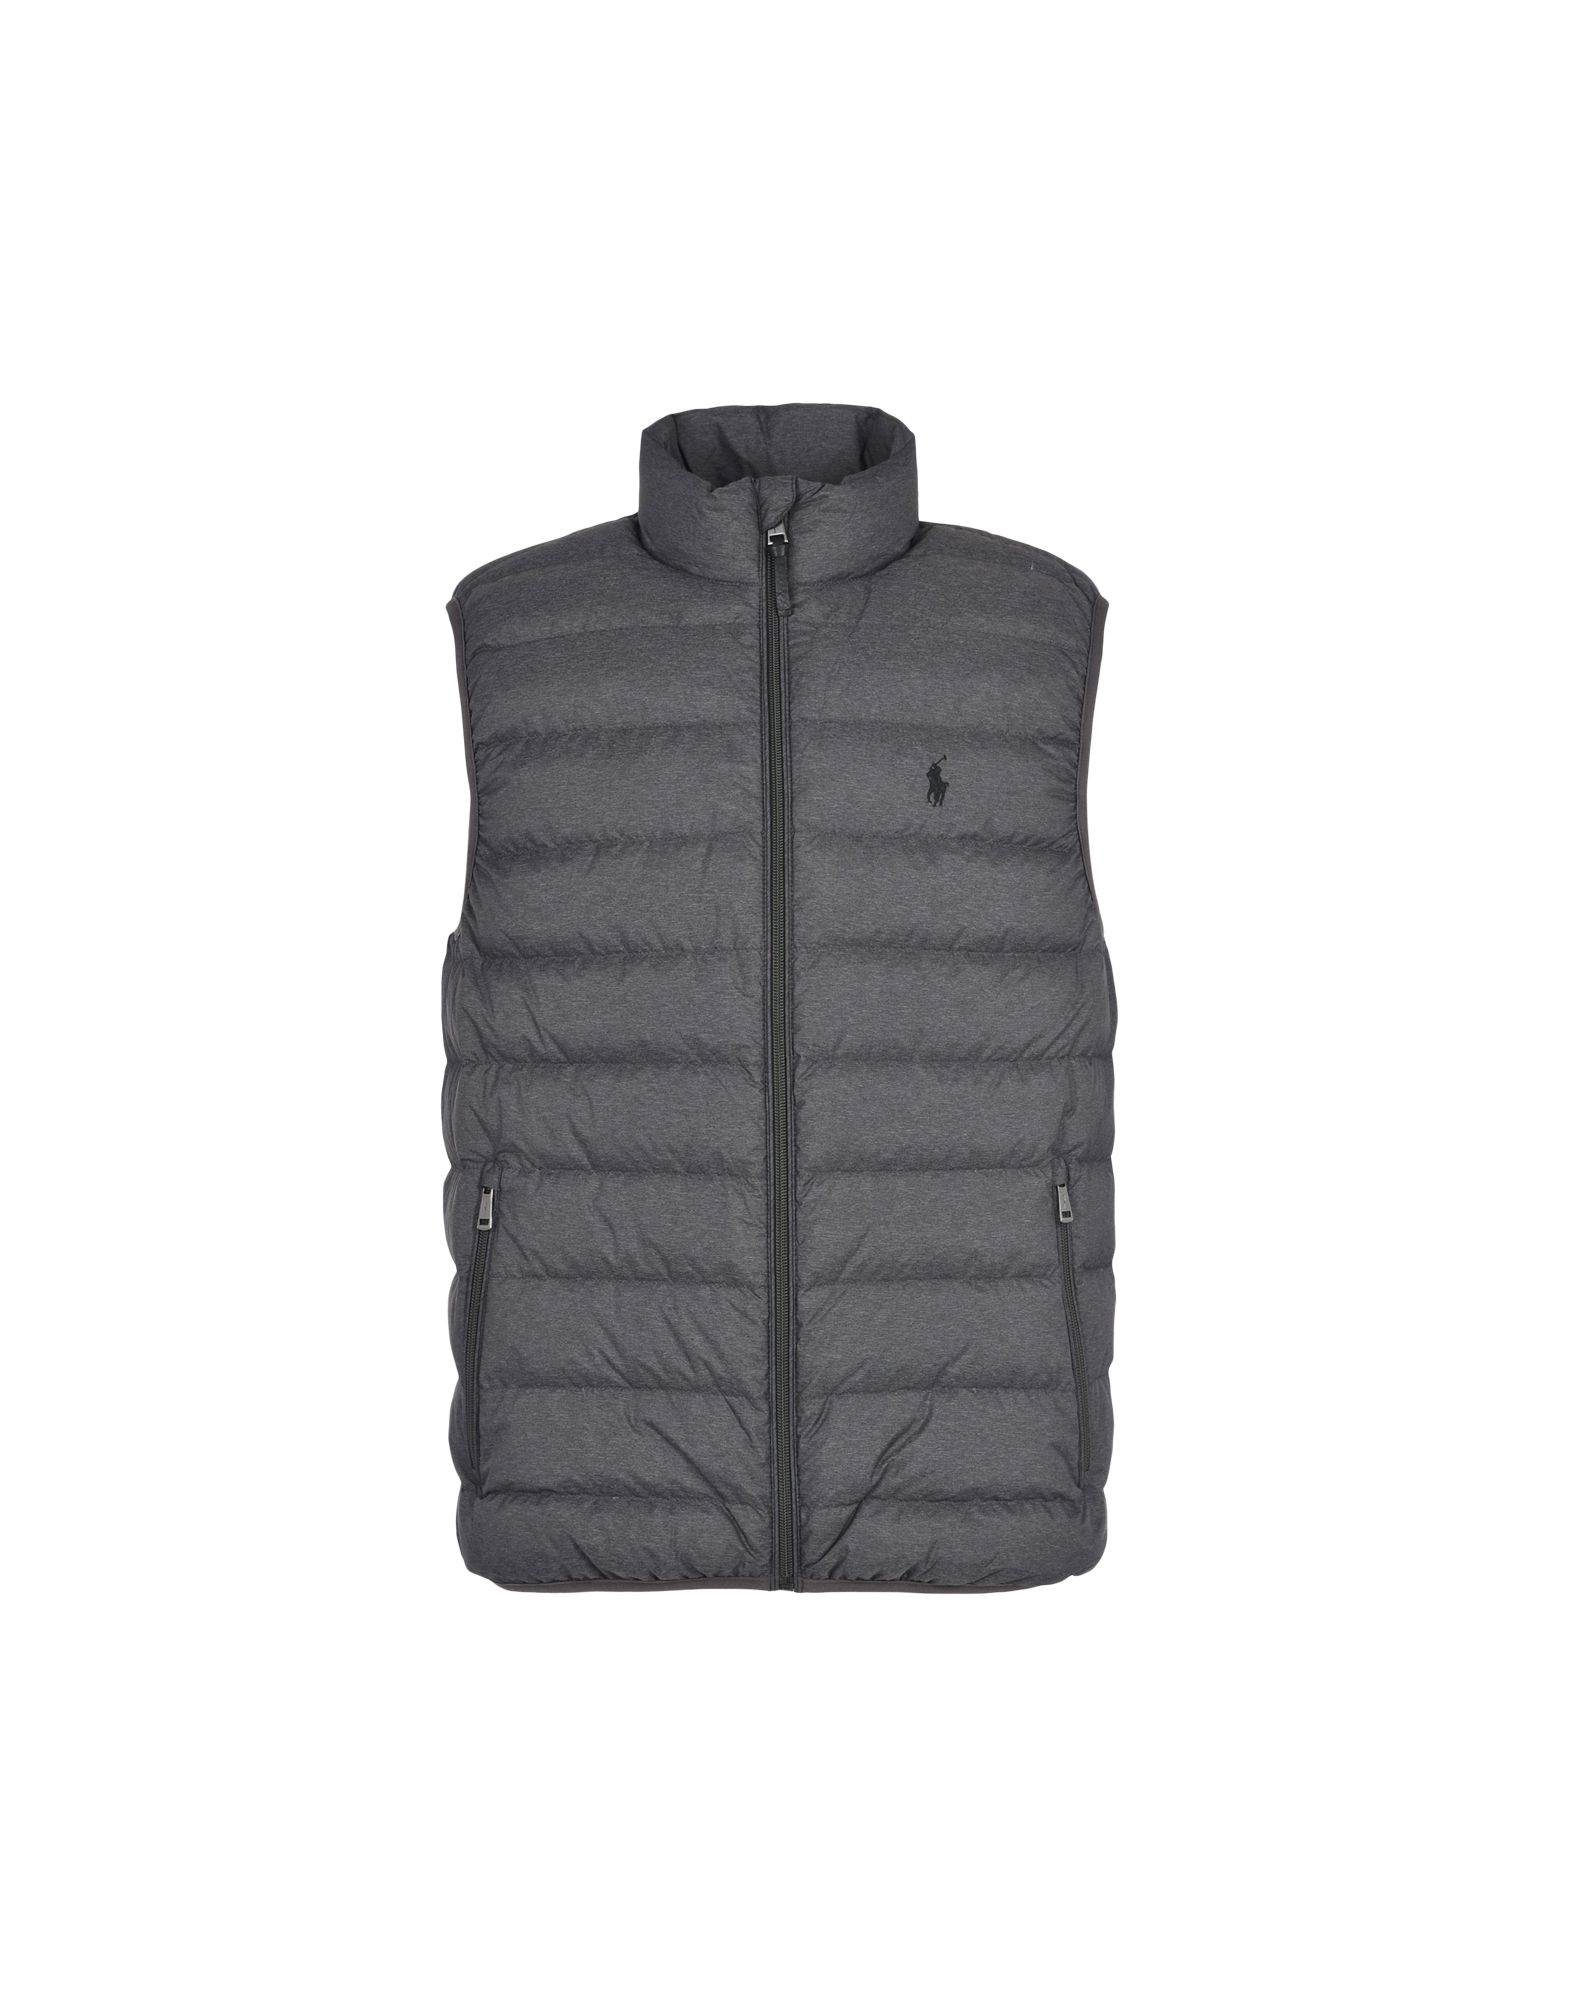 Gilet Polo Ralph Lauren Packable Down Vest - Donna - Acquista online su